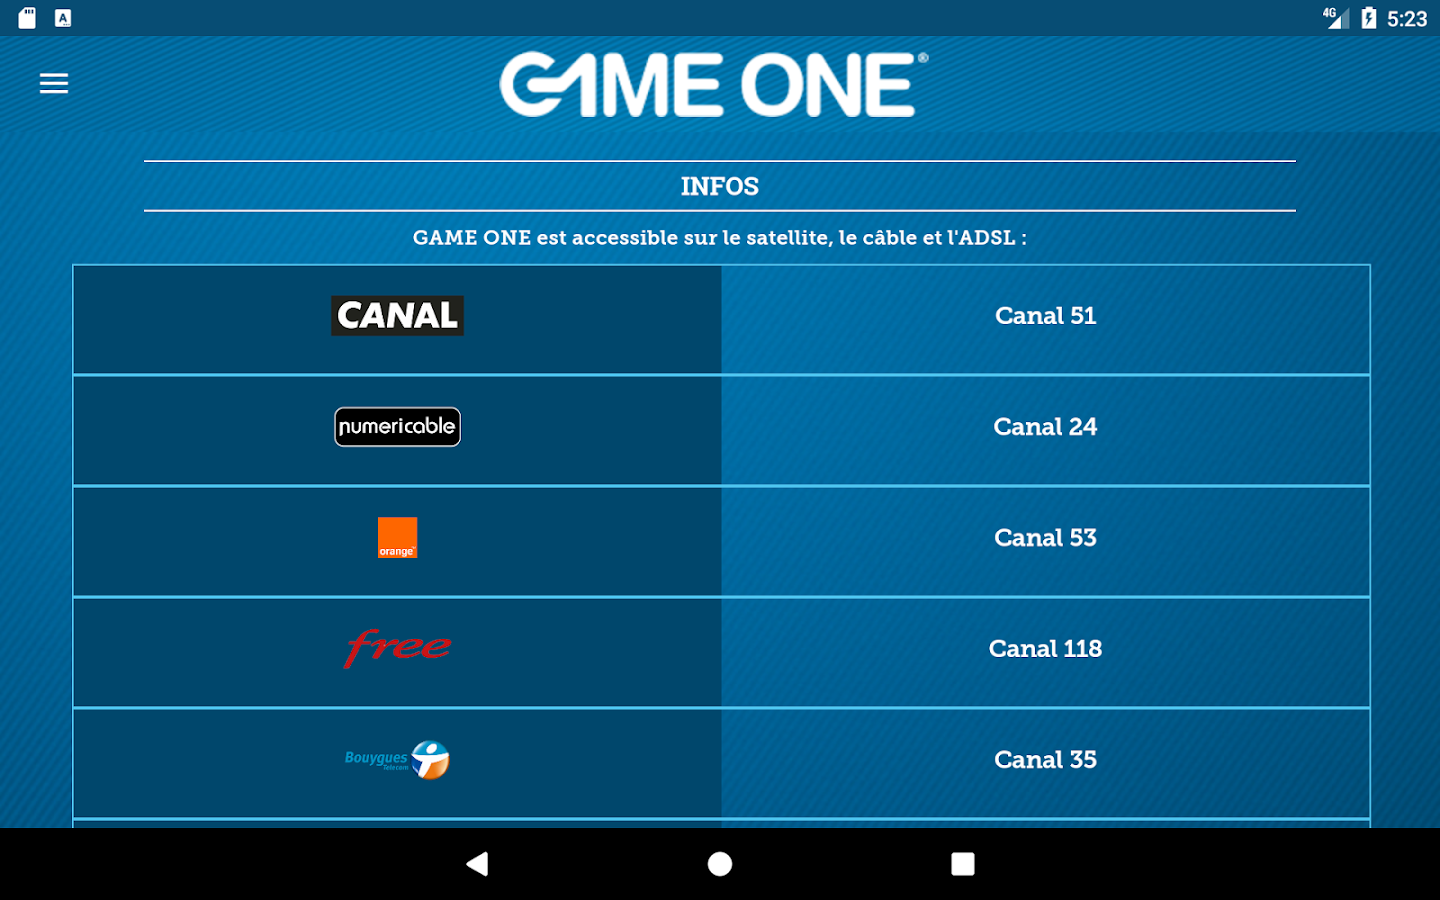 GAME ONE – Capture d'écran